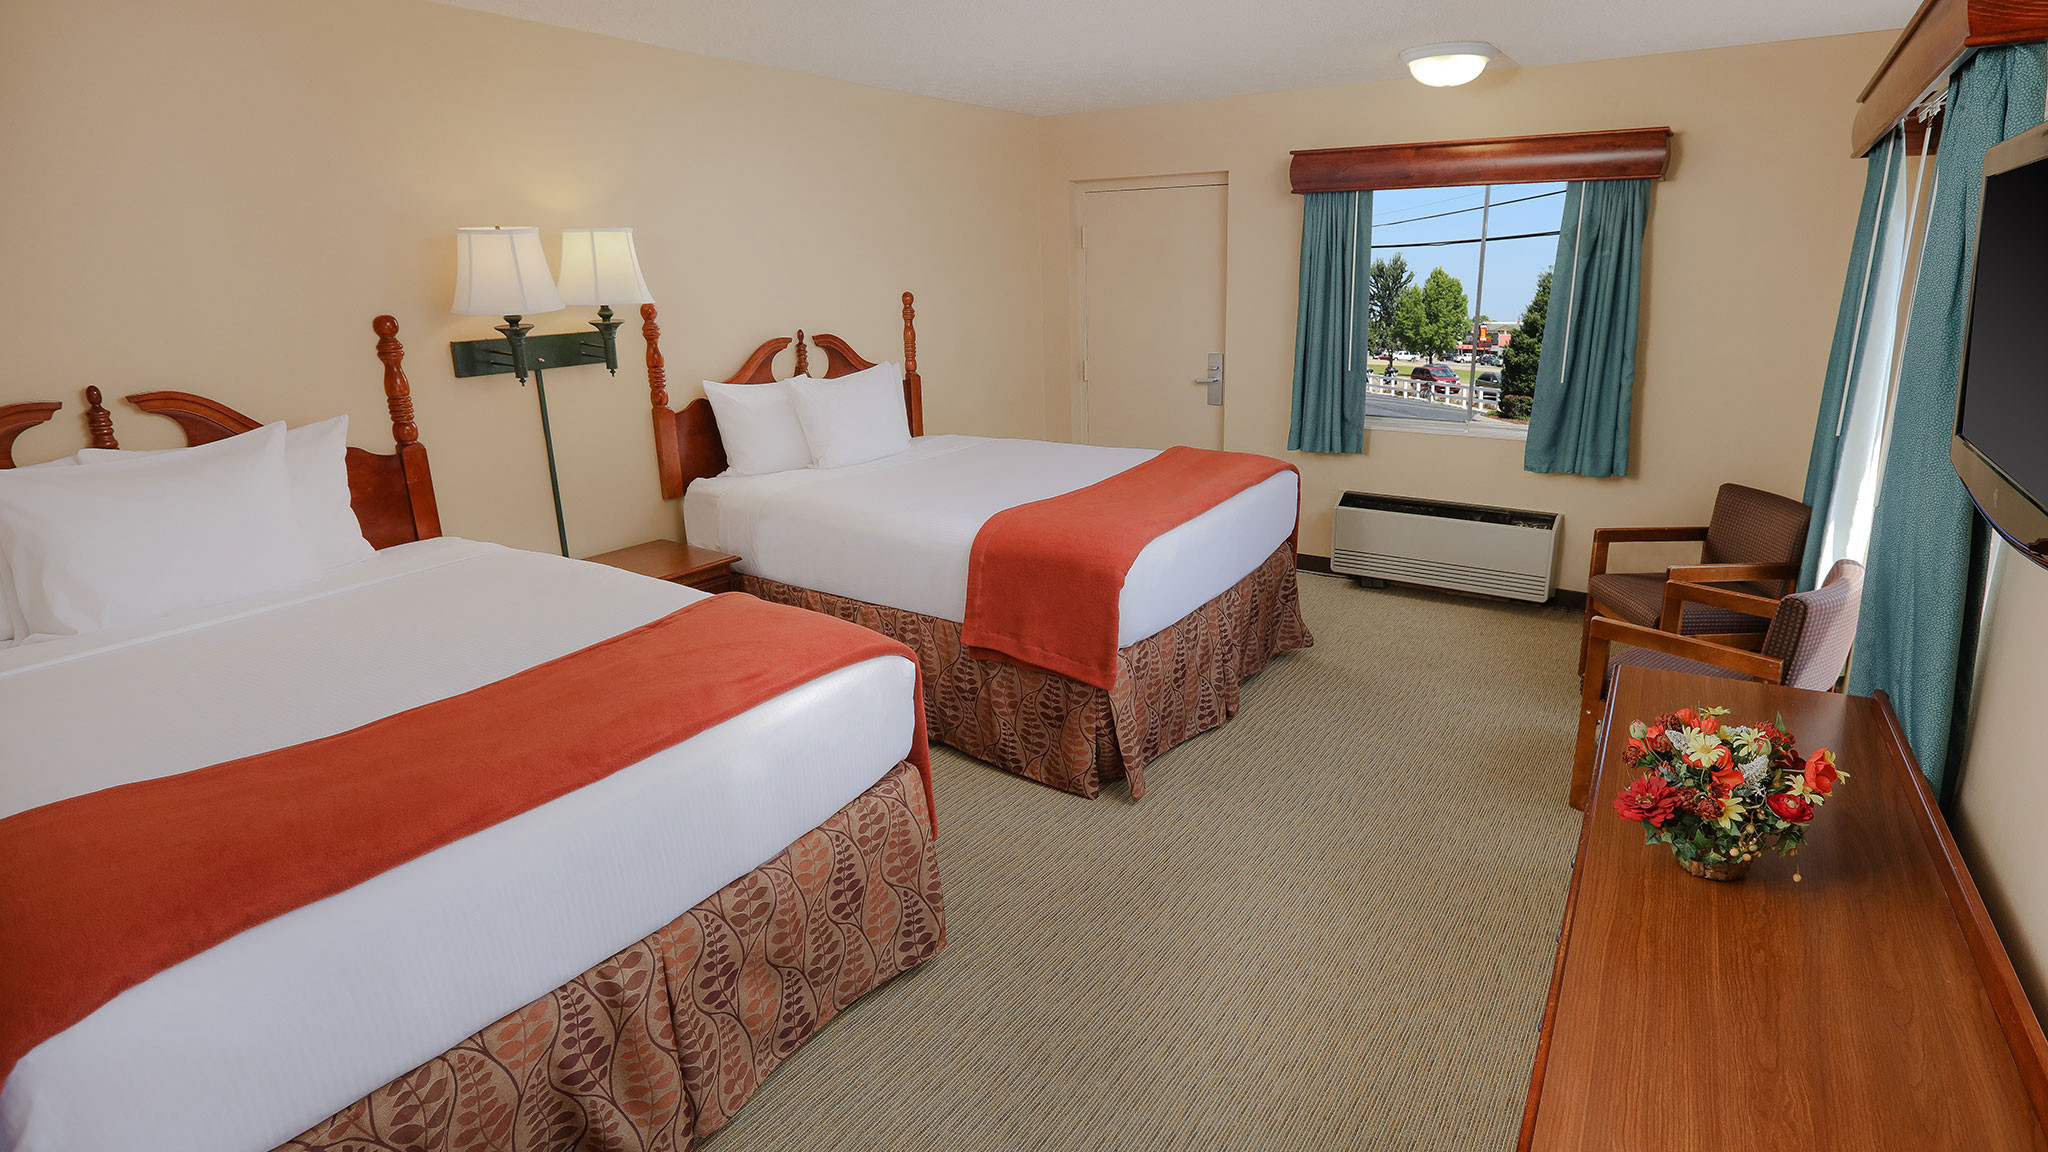 Double Queen Guestroom with room for up to four guests at our resorts in Pigeon Forge Tennessee | Wild Bear Inn | Westgate Resorts